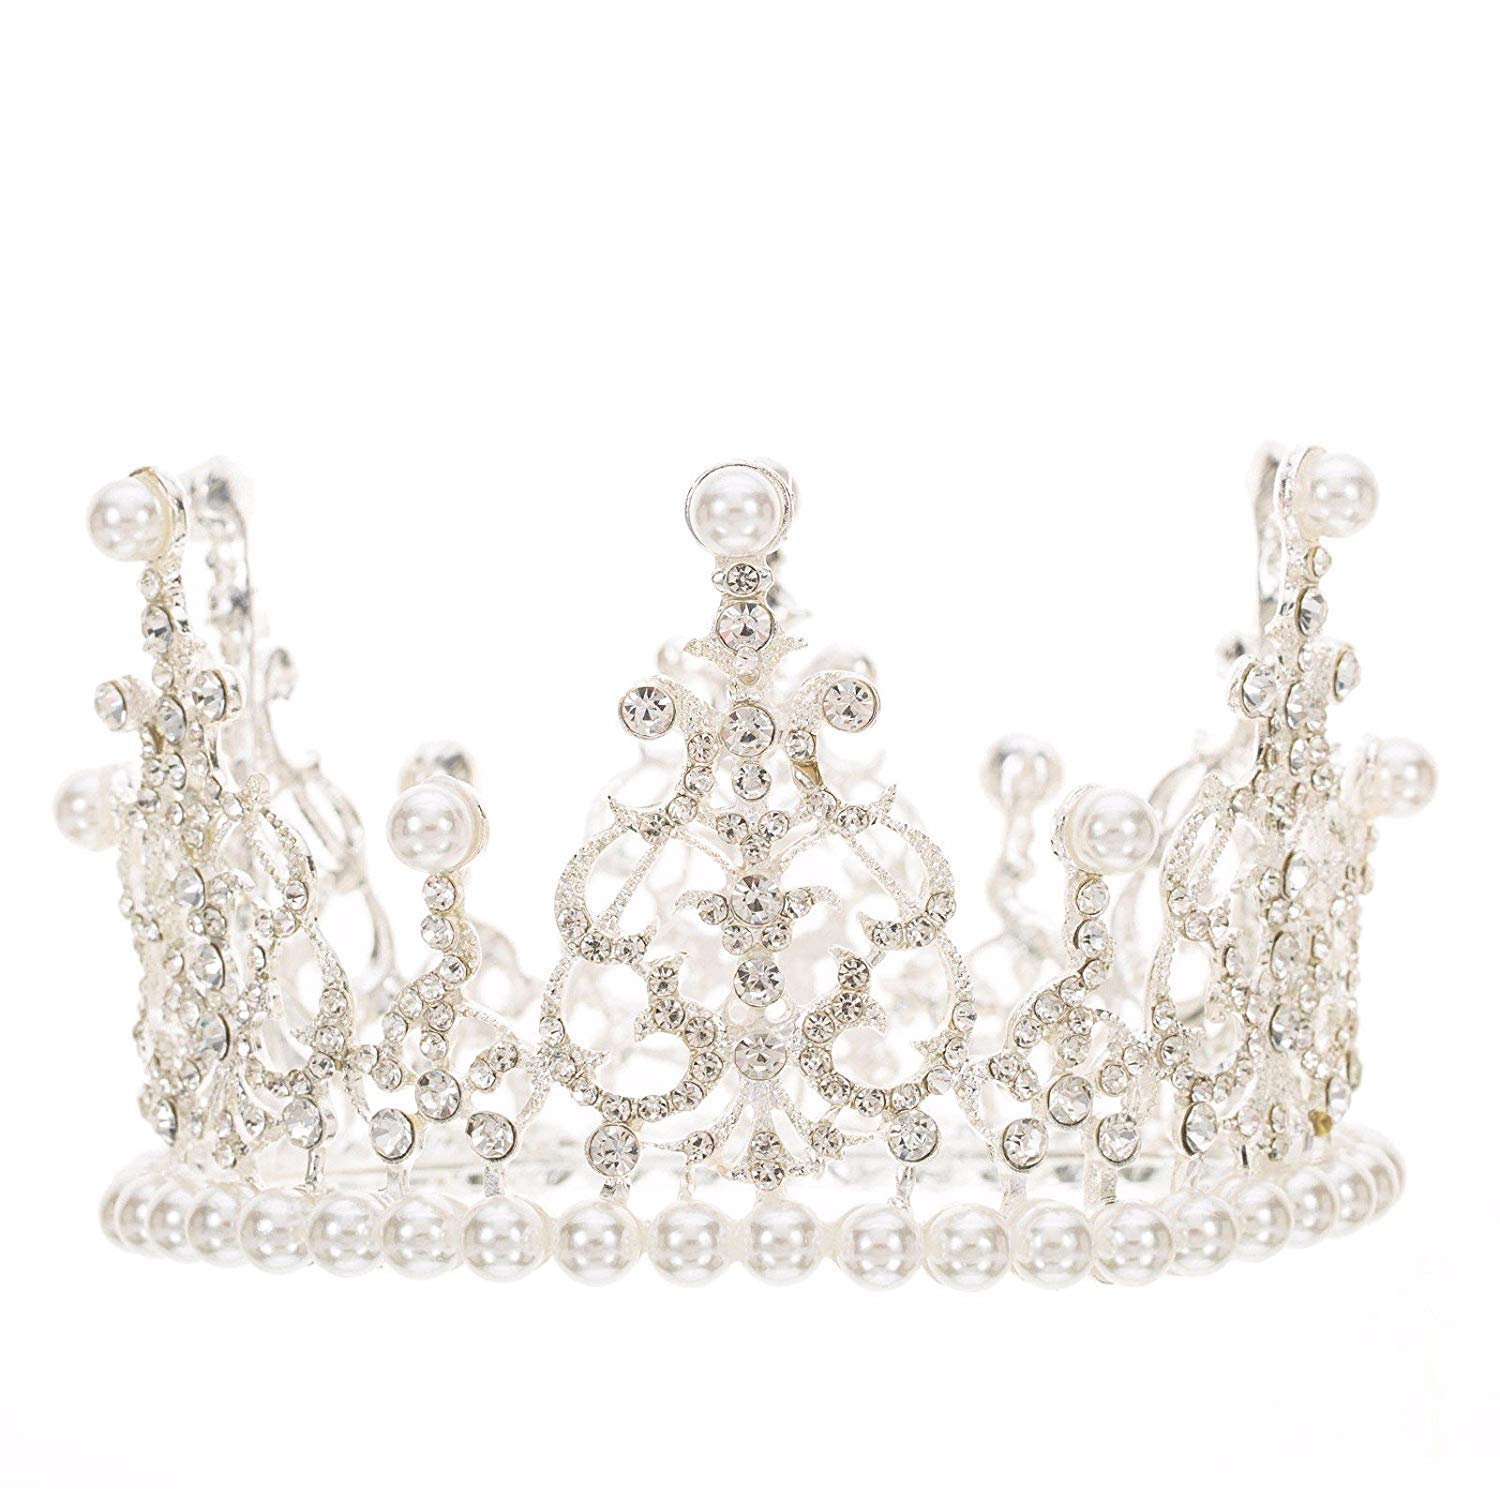 Crystal Crown, Decorative Ornaments Pearls Crowns Decorative Ornaments Ornaments Hair Bands Hair Ornaments Hairpins.